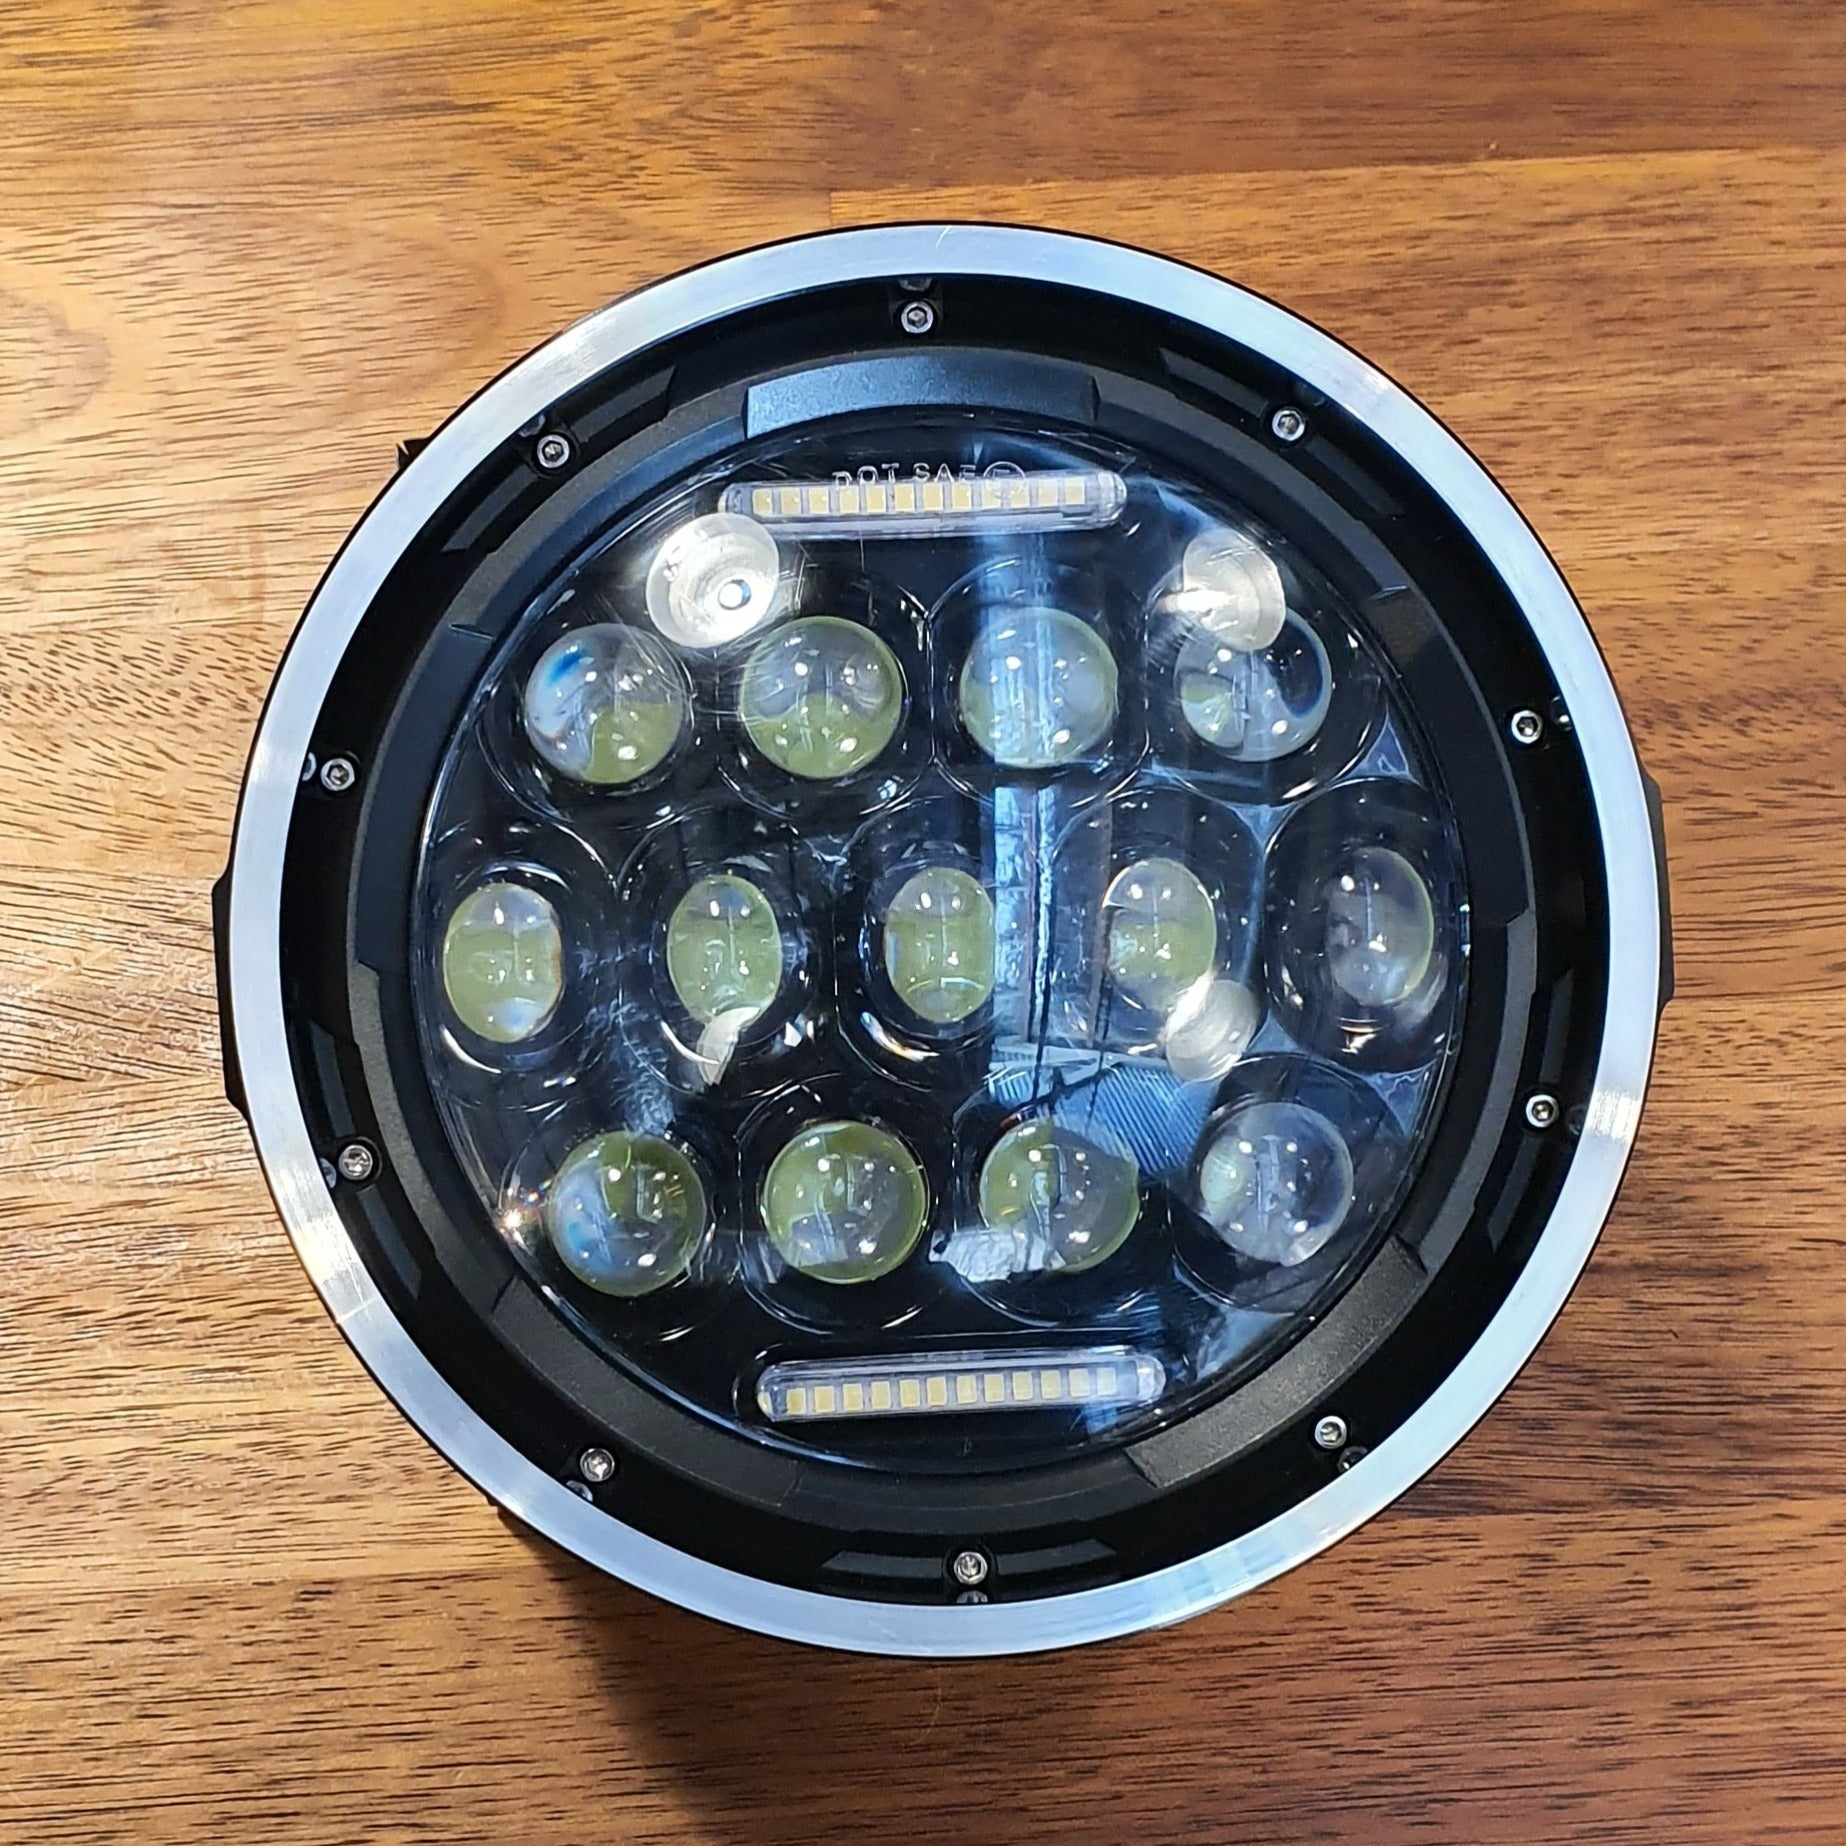 "rogue motorcycles perth australia 7 inch headlight led projector multiled 7"" cafe racer tracker custom bike motorbike WA NEW multi led 7 bezel"